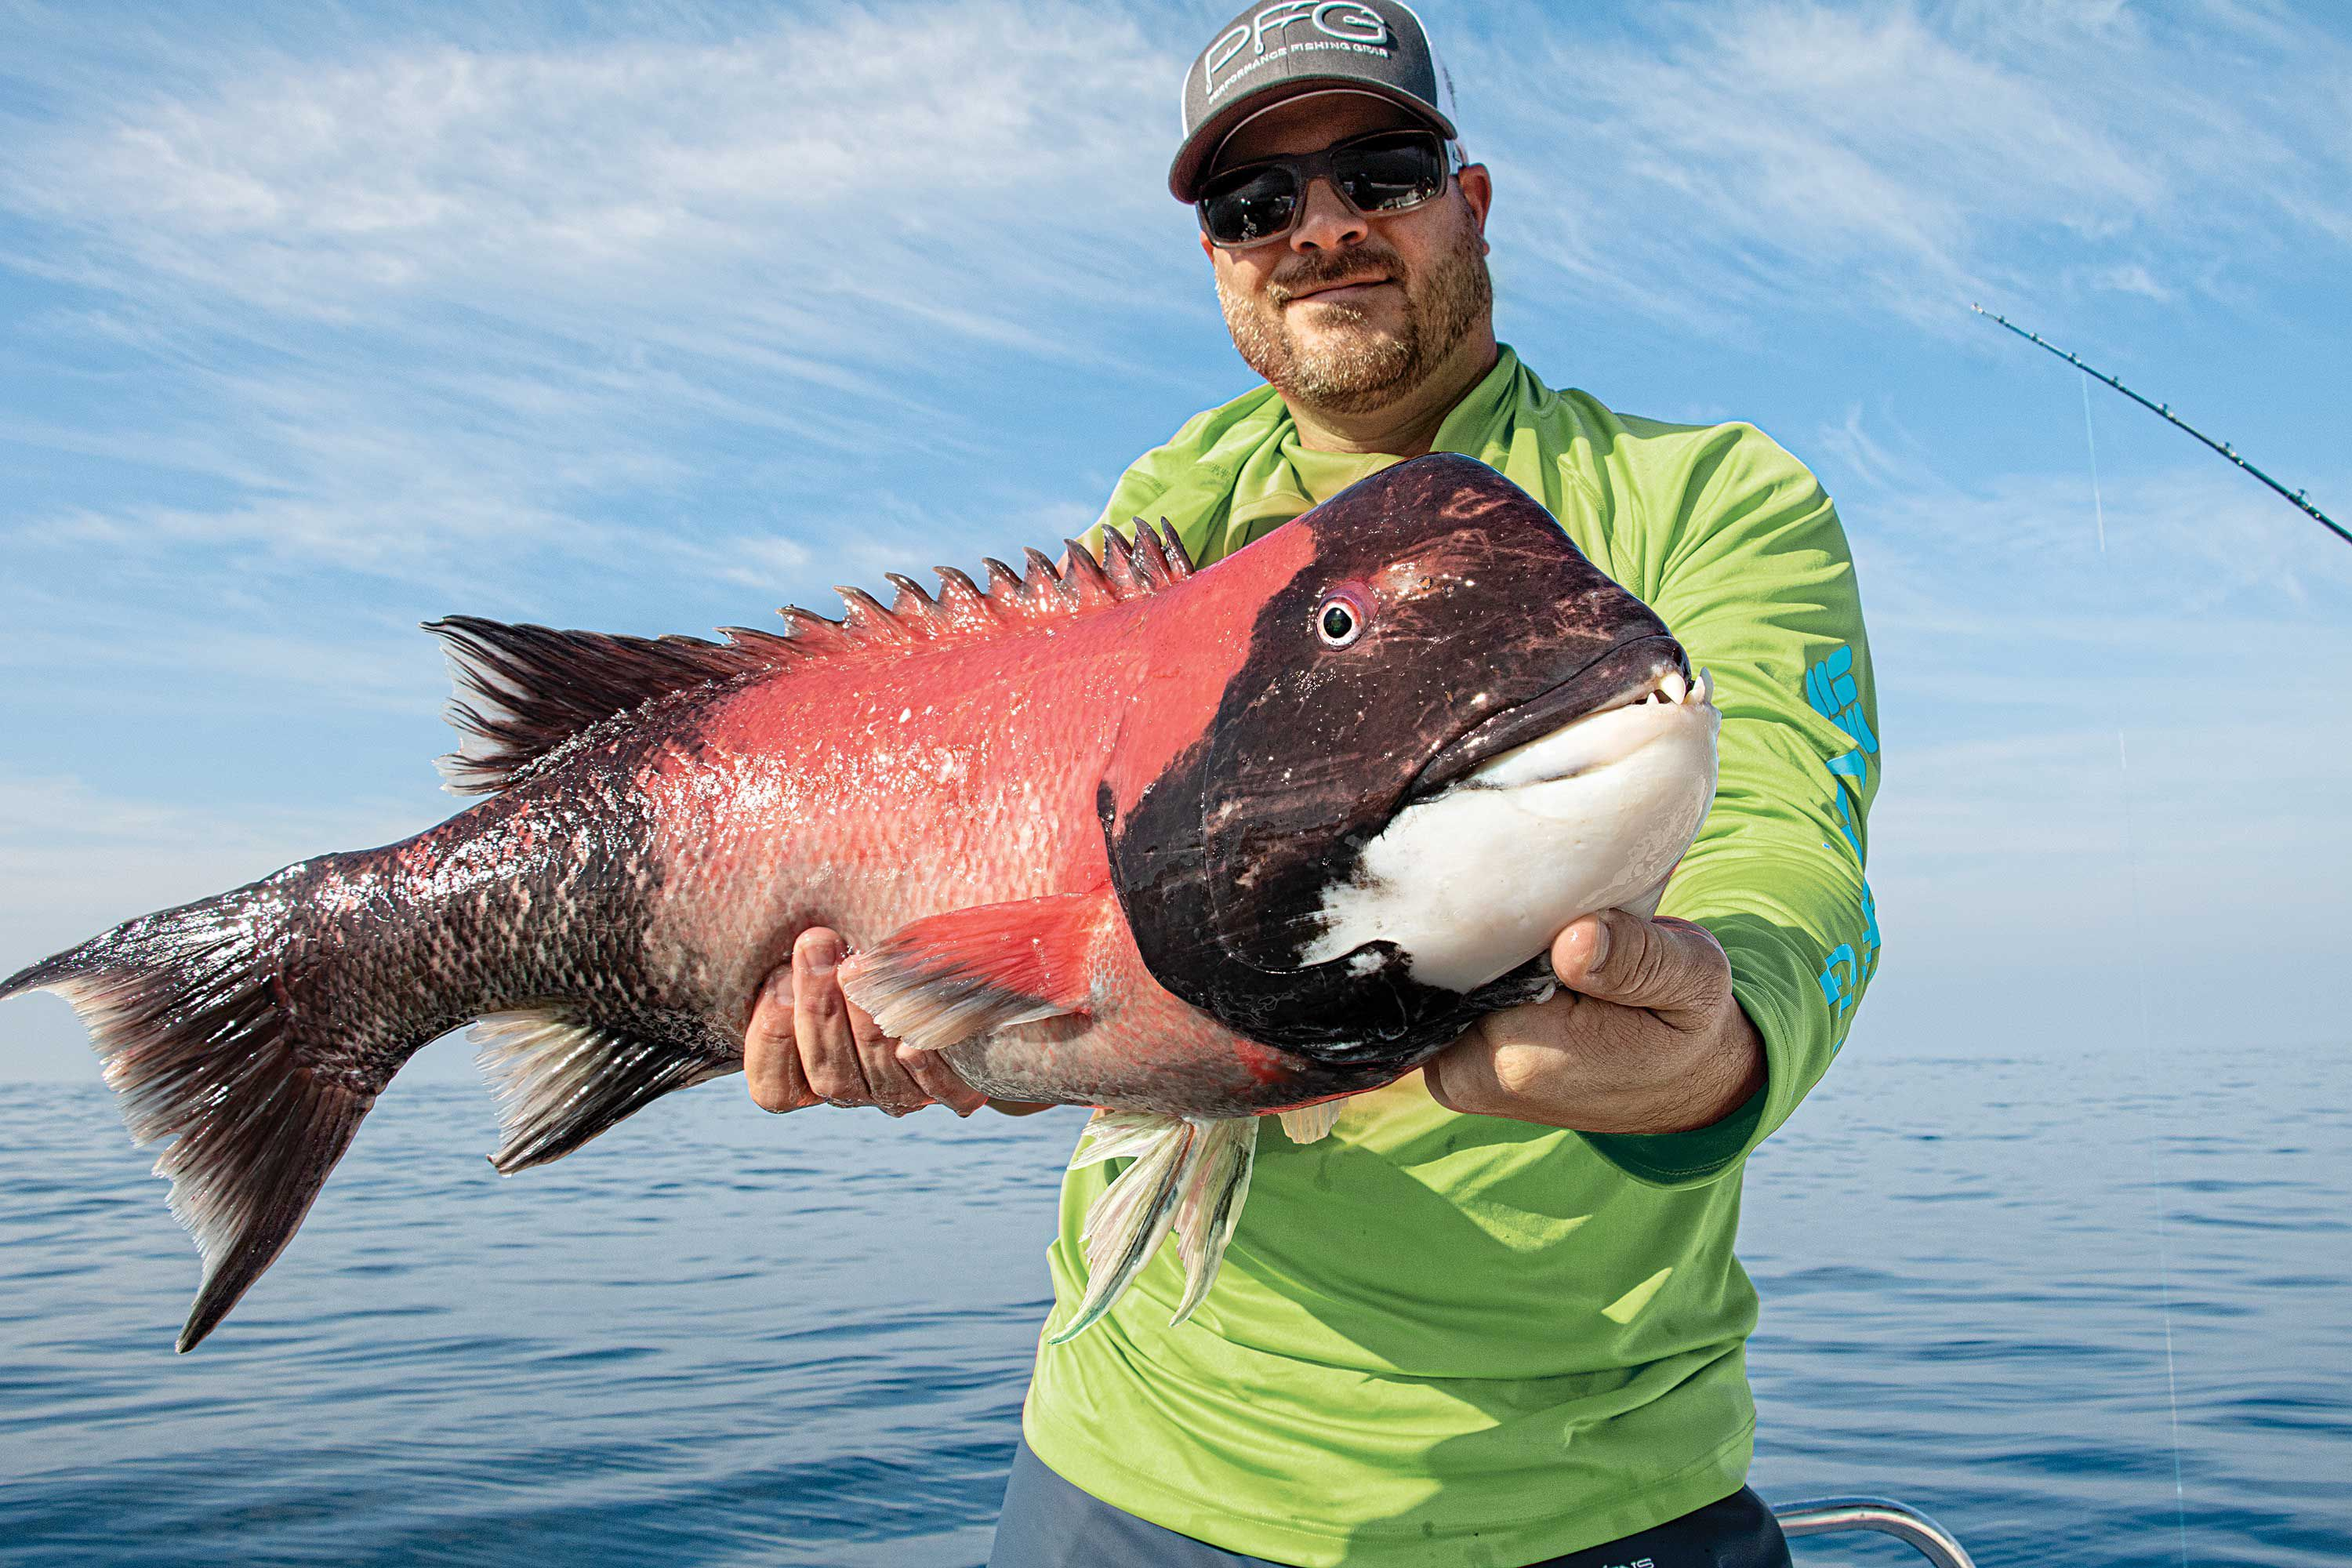 Precise, well-planned drifts give the angler an edge when hunting structure-loving species such as California sheephead.